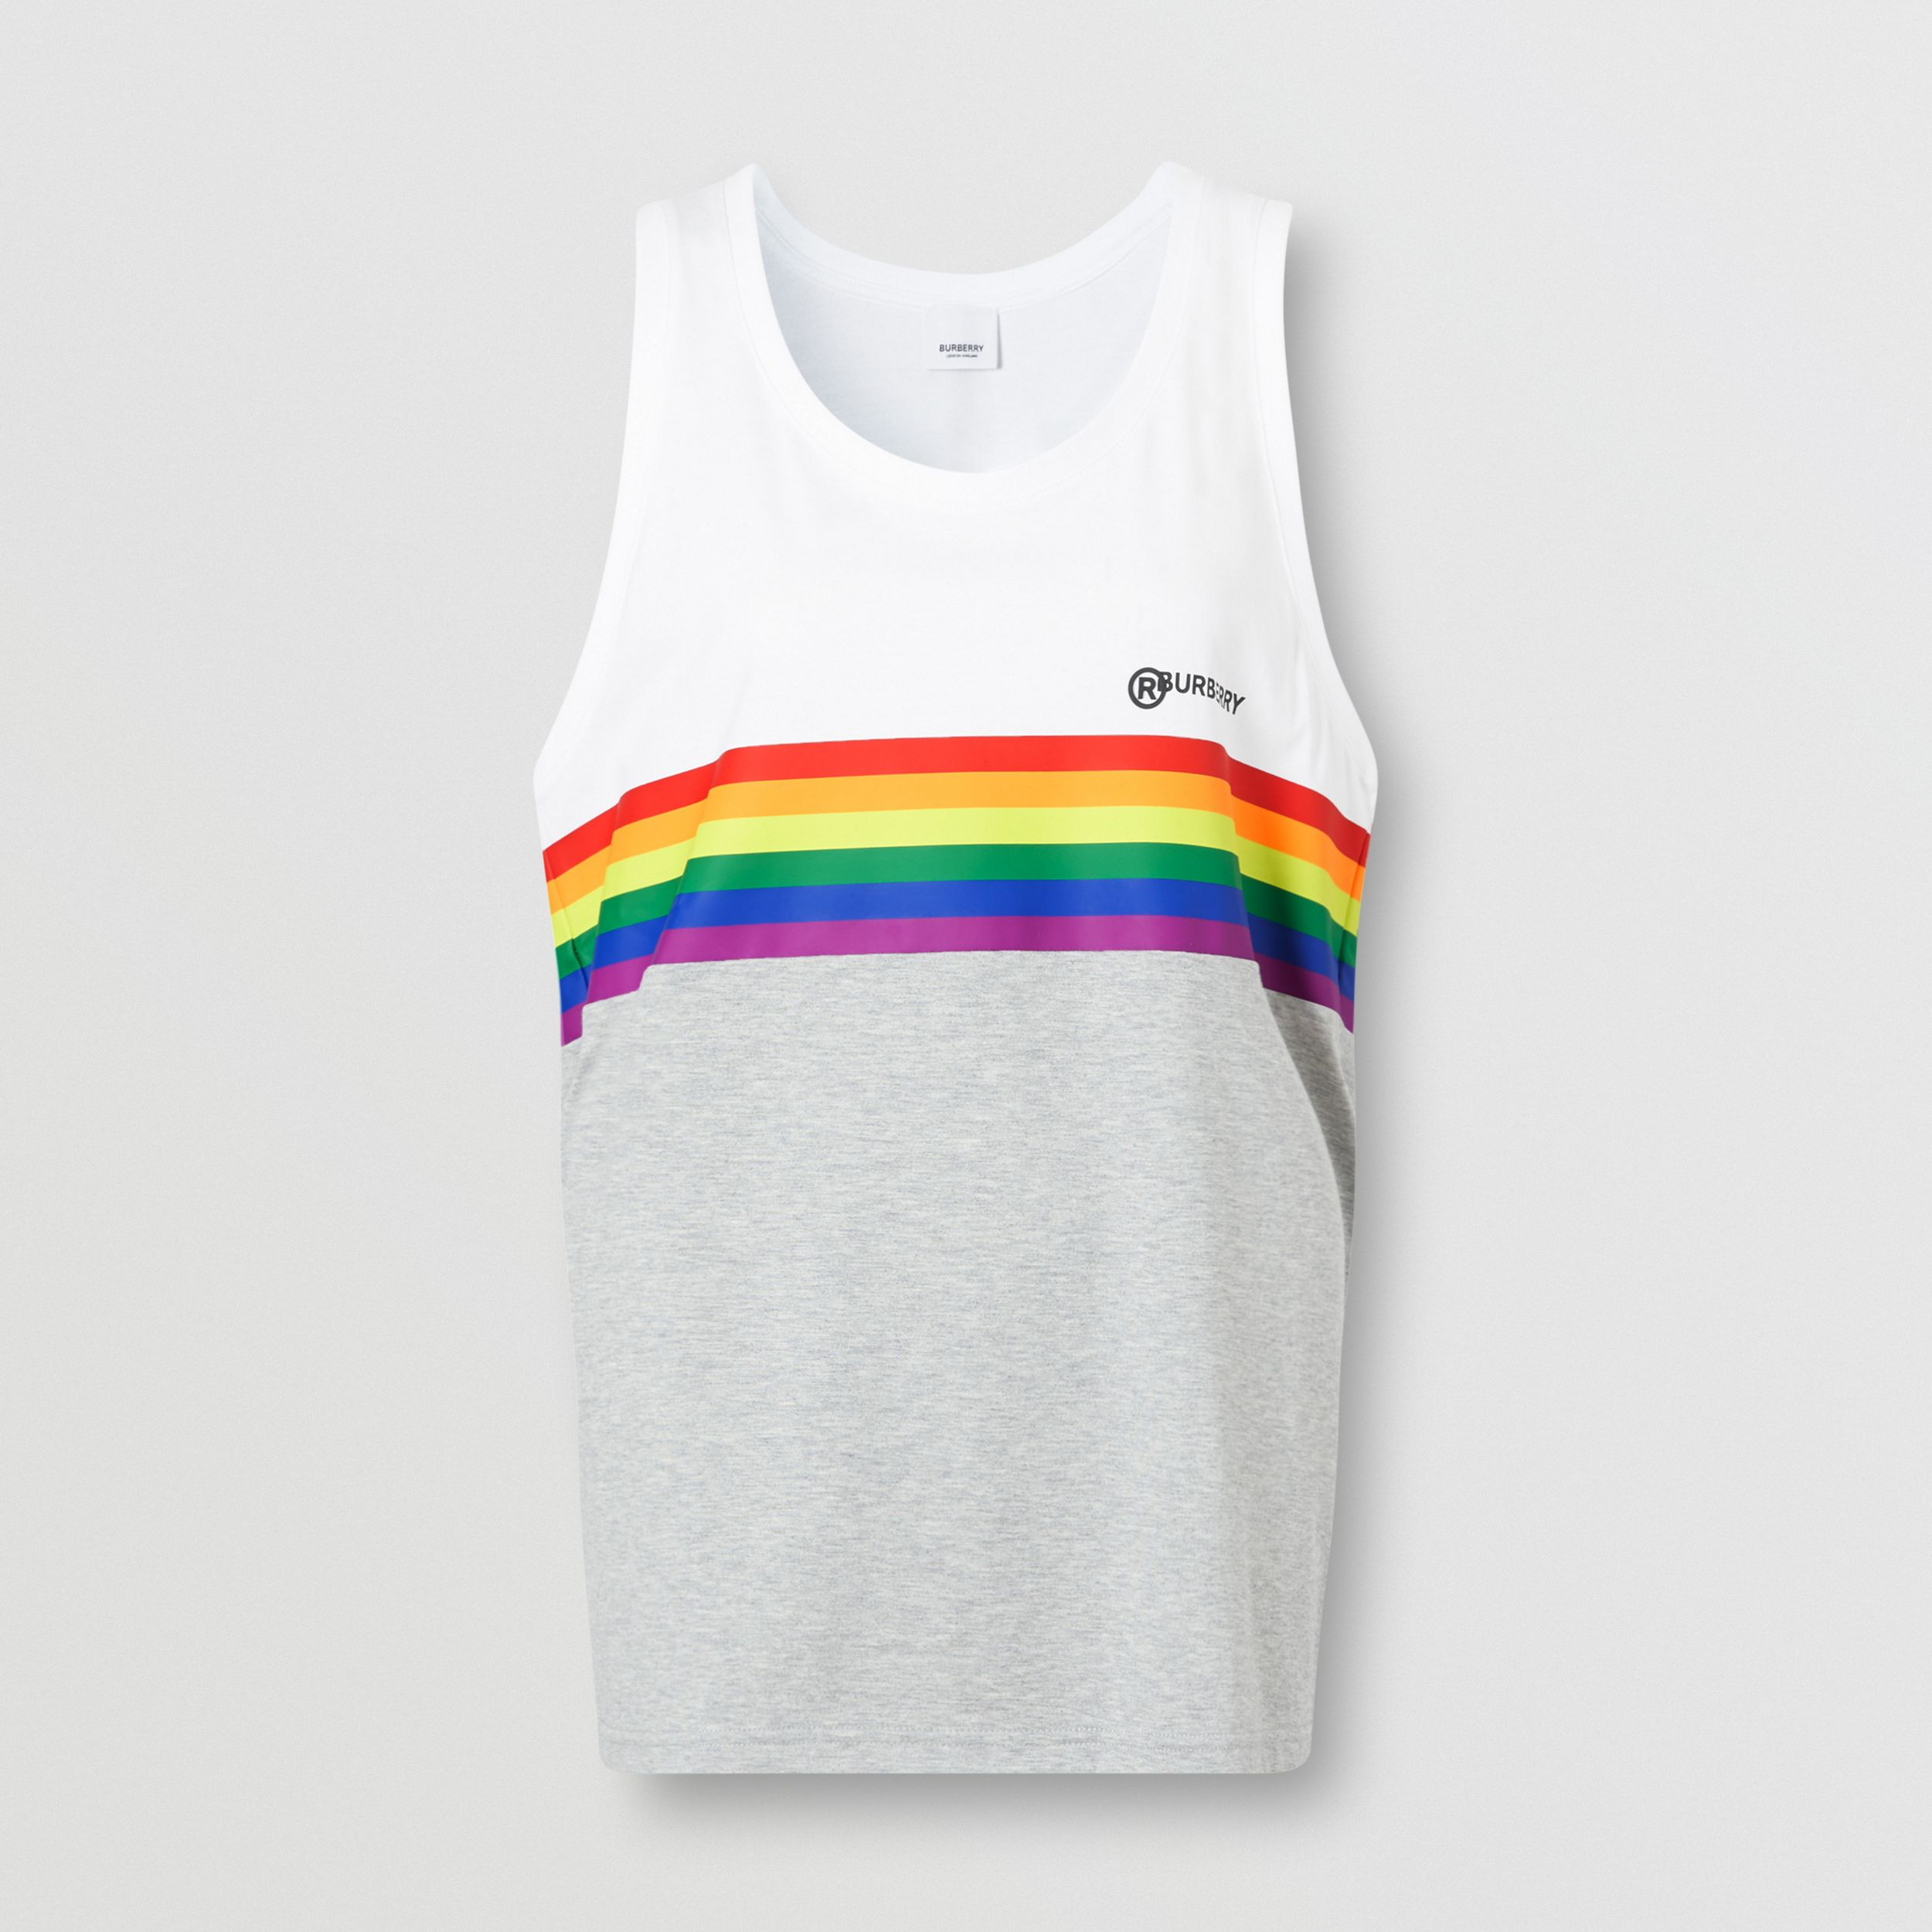 Rainbow Stripe Print Cotton Vest – Unisex in White | Burberry - 1